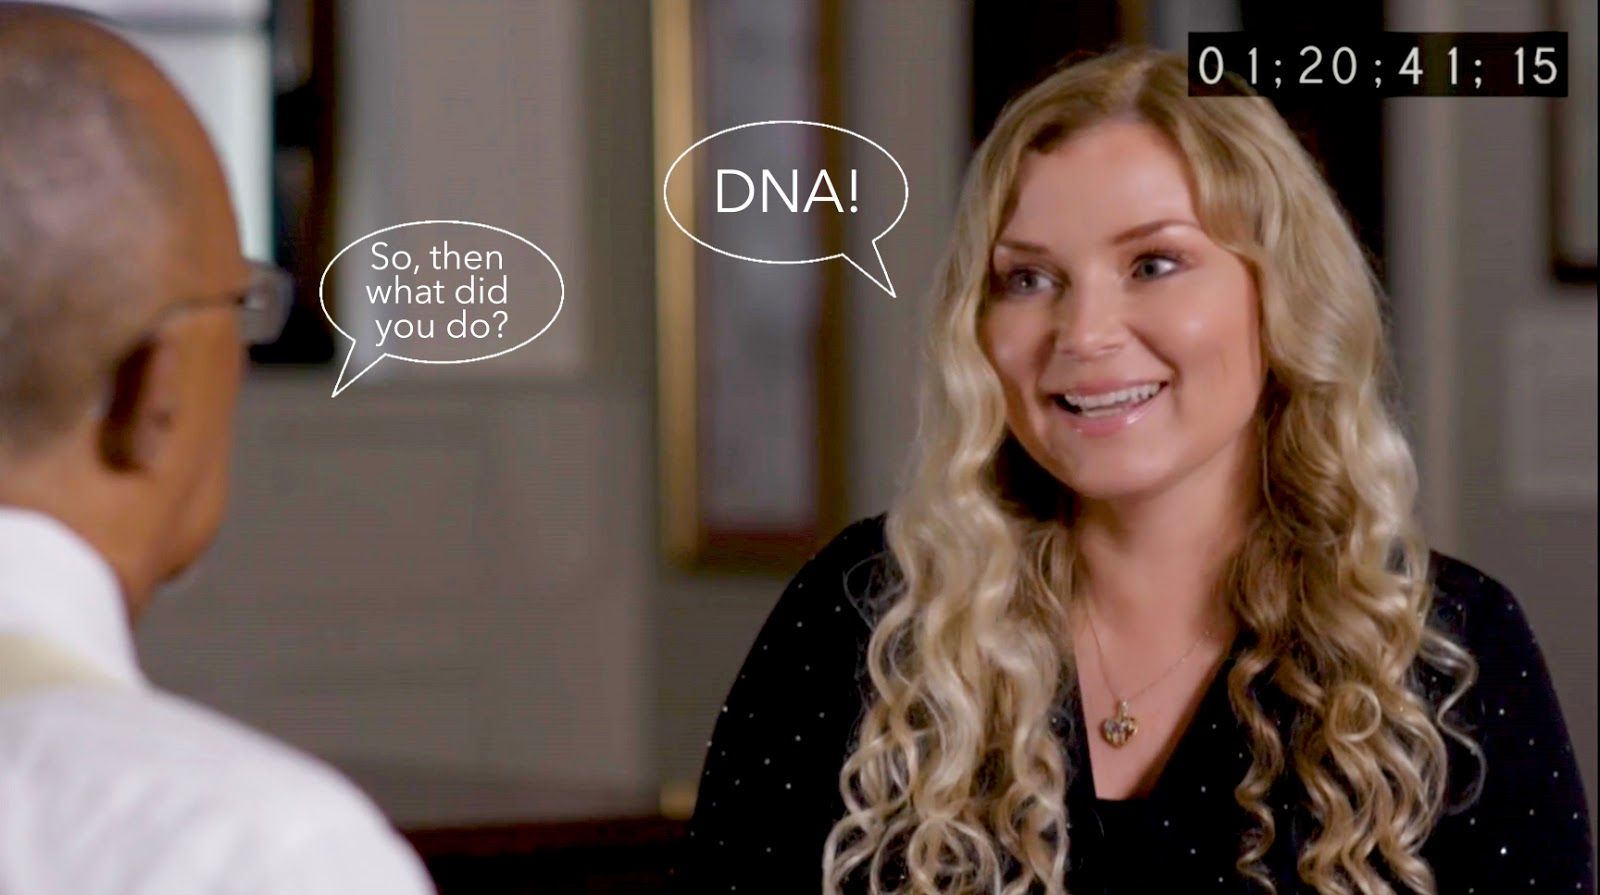 So, then what did you do? DNA!